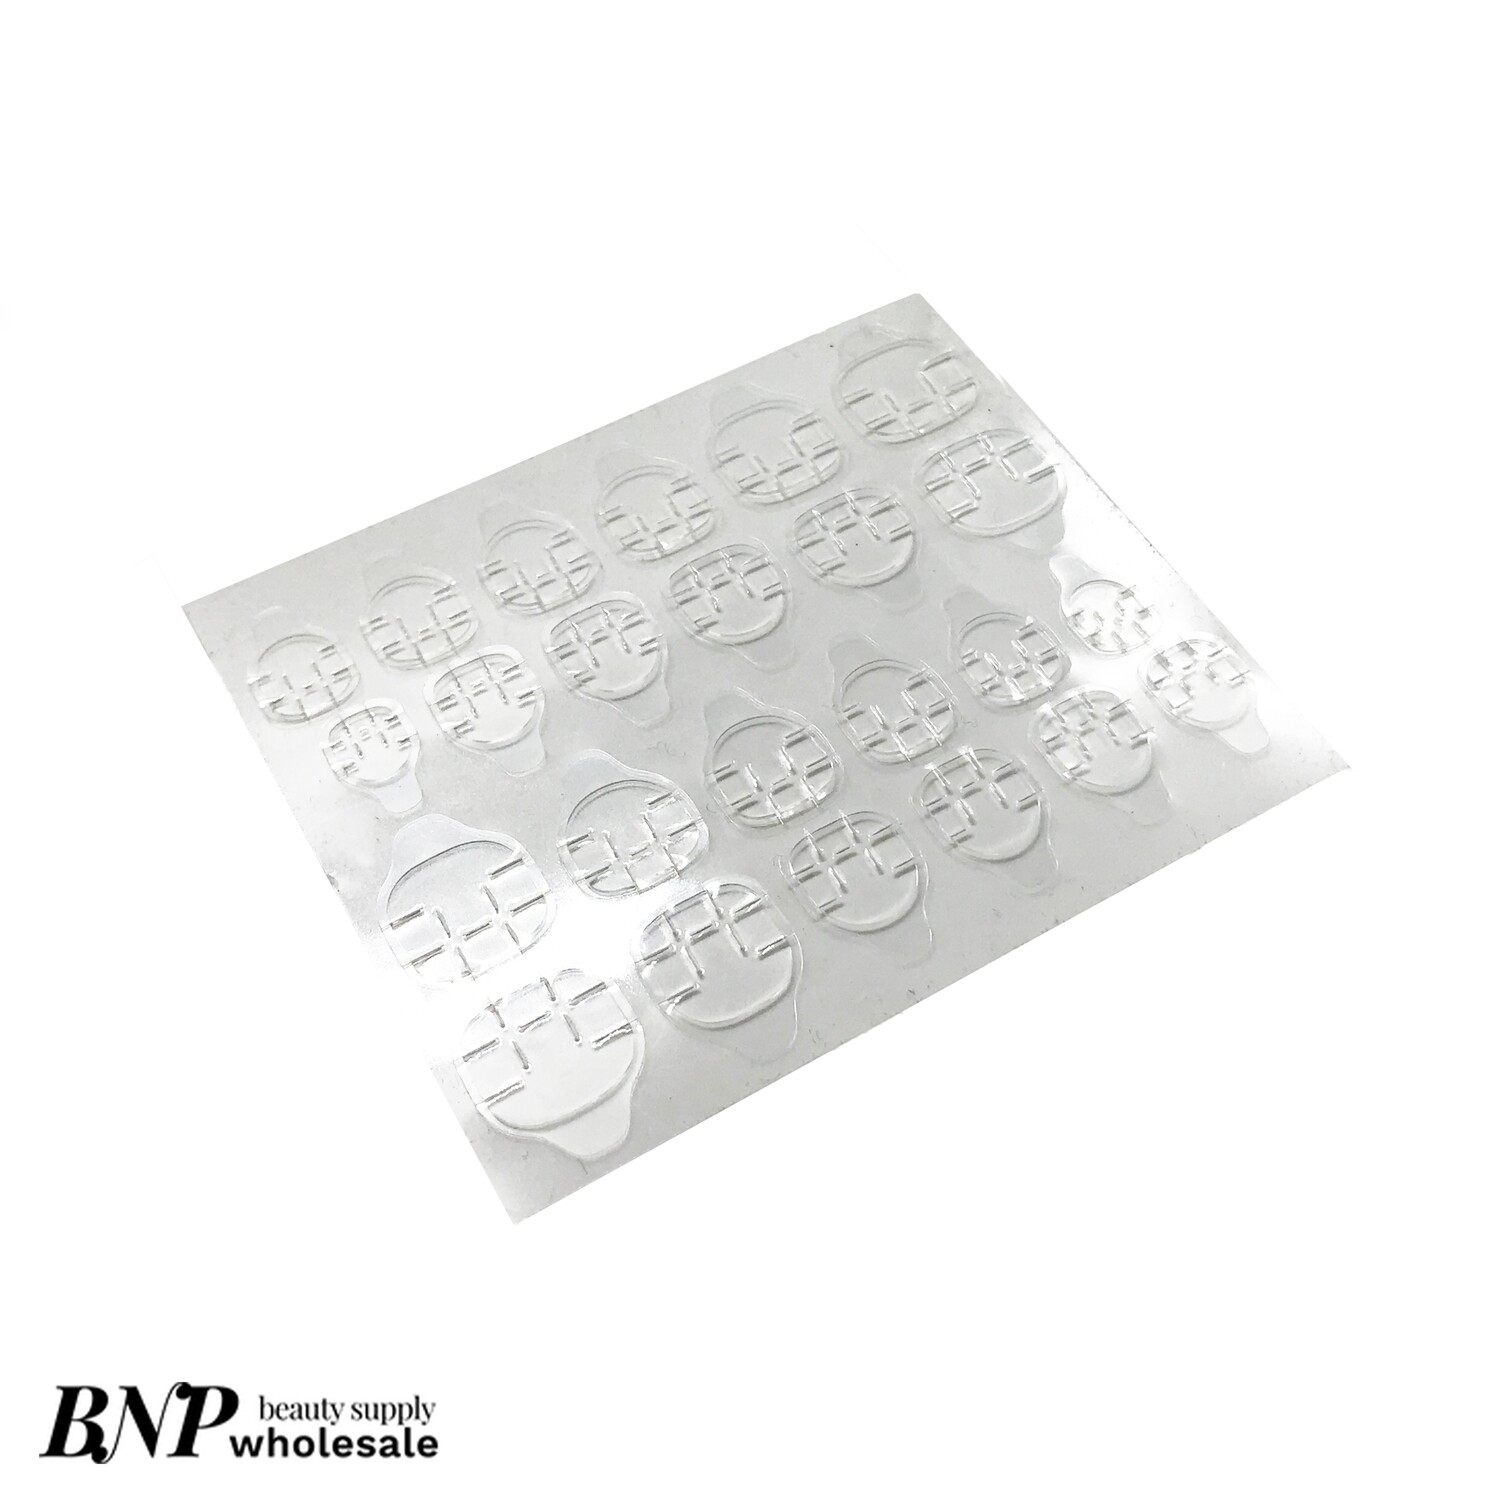 [generic] Silicon Stickers for Press-On Nail Tips